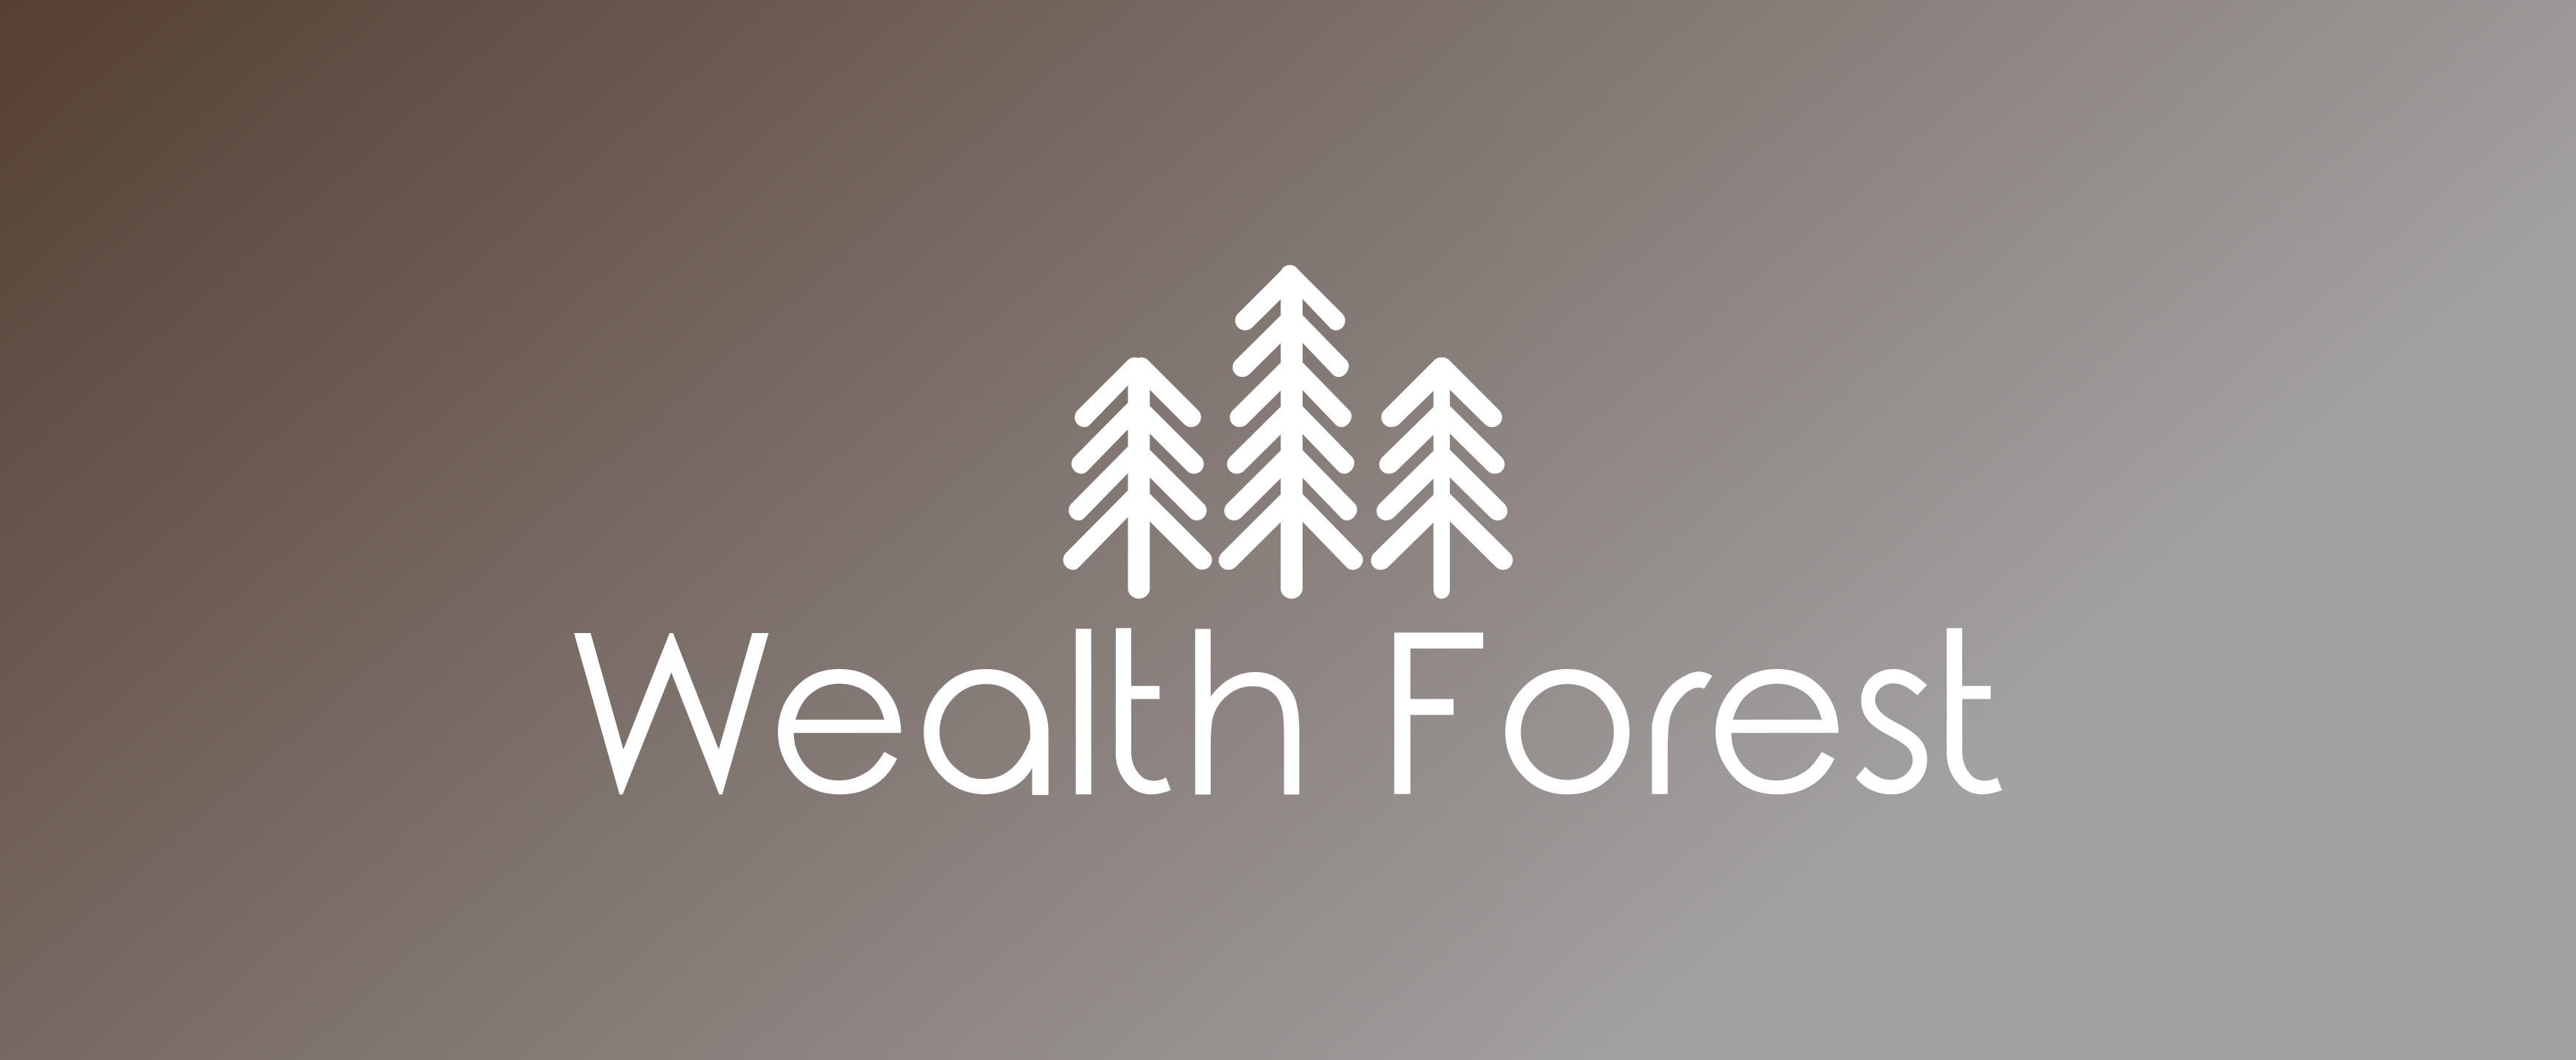 Wealth Forest Brand Logos feature-image